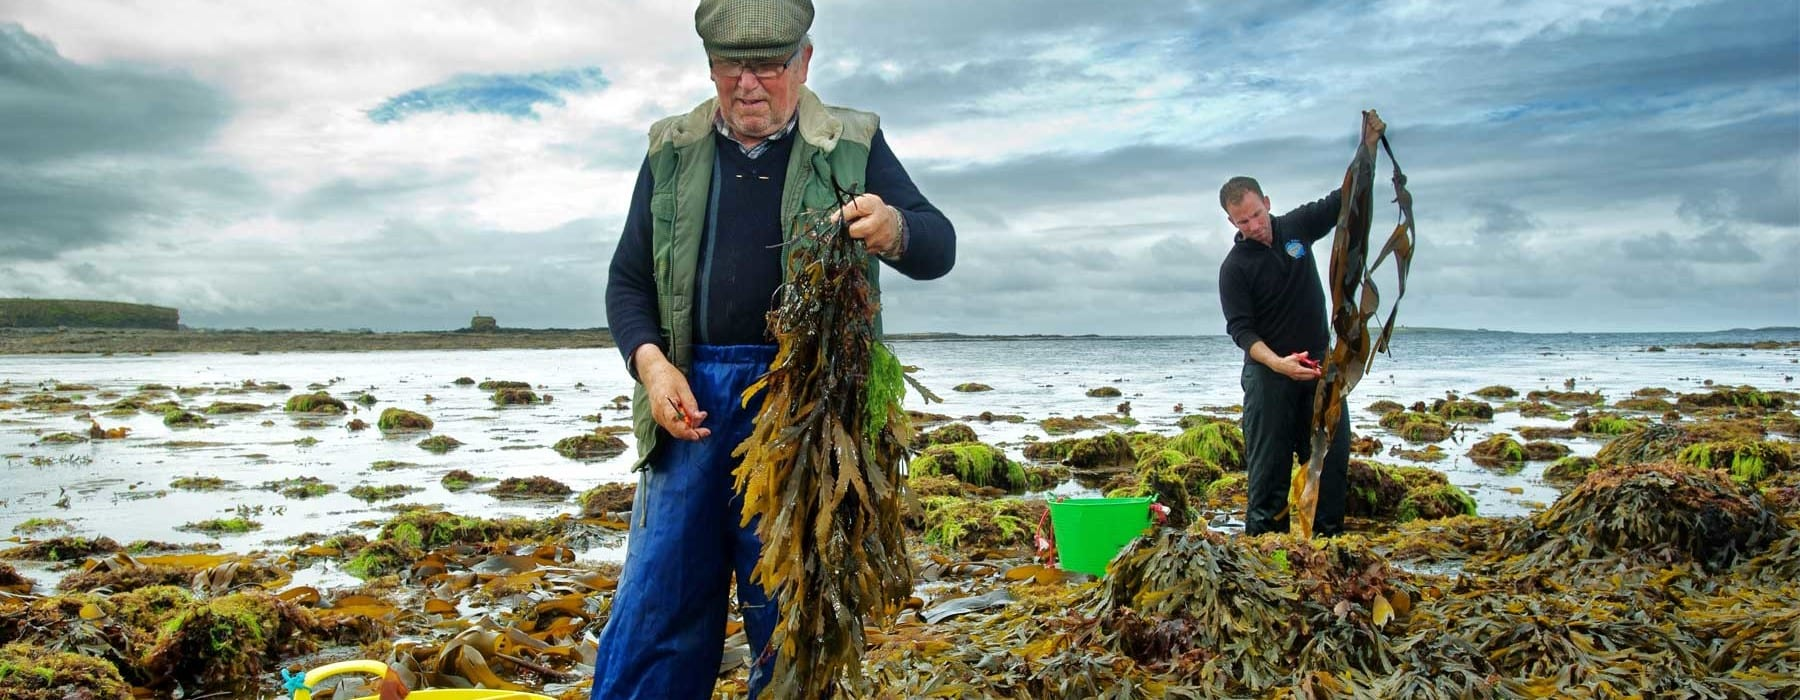 The Best of Irish experiences with Wild Irish Sea Veg  on the beautiful coastline of County Clare